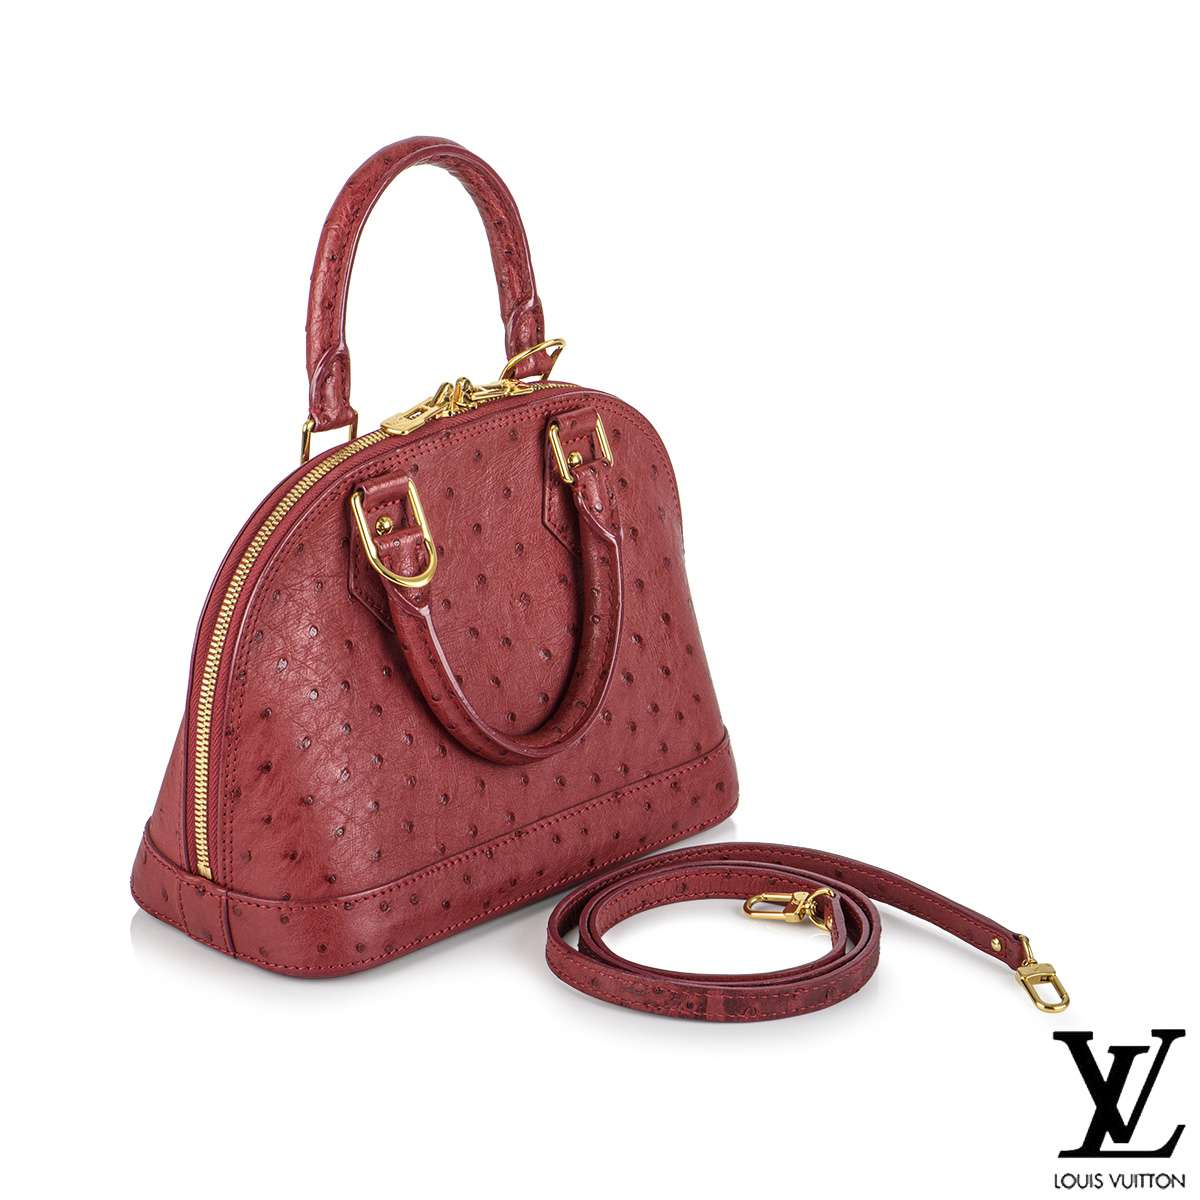 Louis Vuitton Fuchsia Ostrich Alma BB Bag